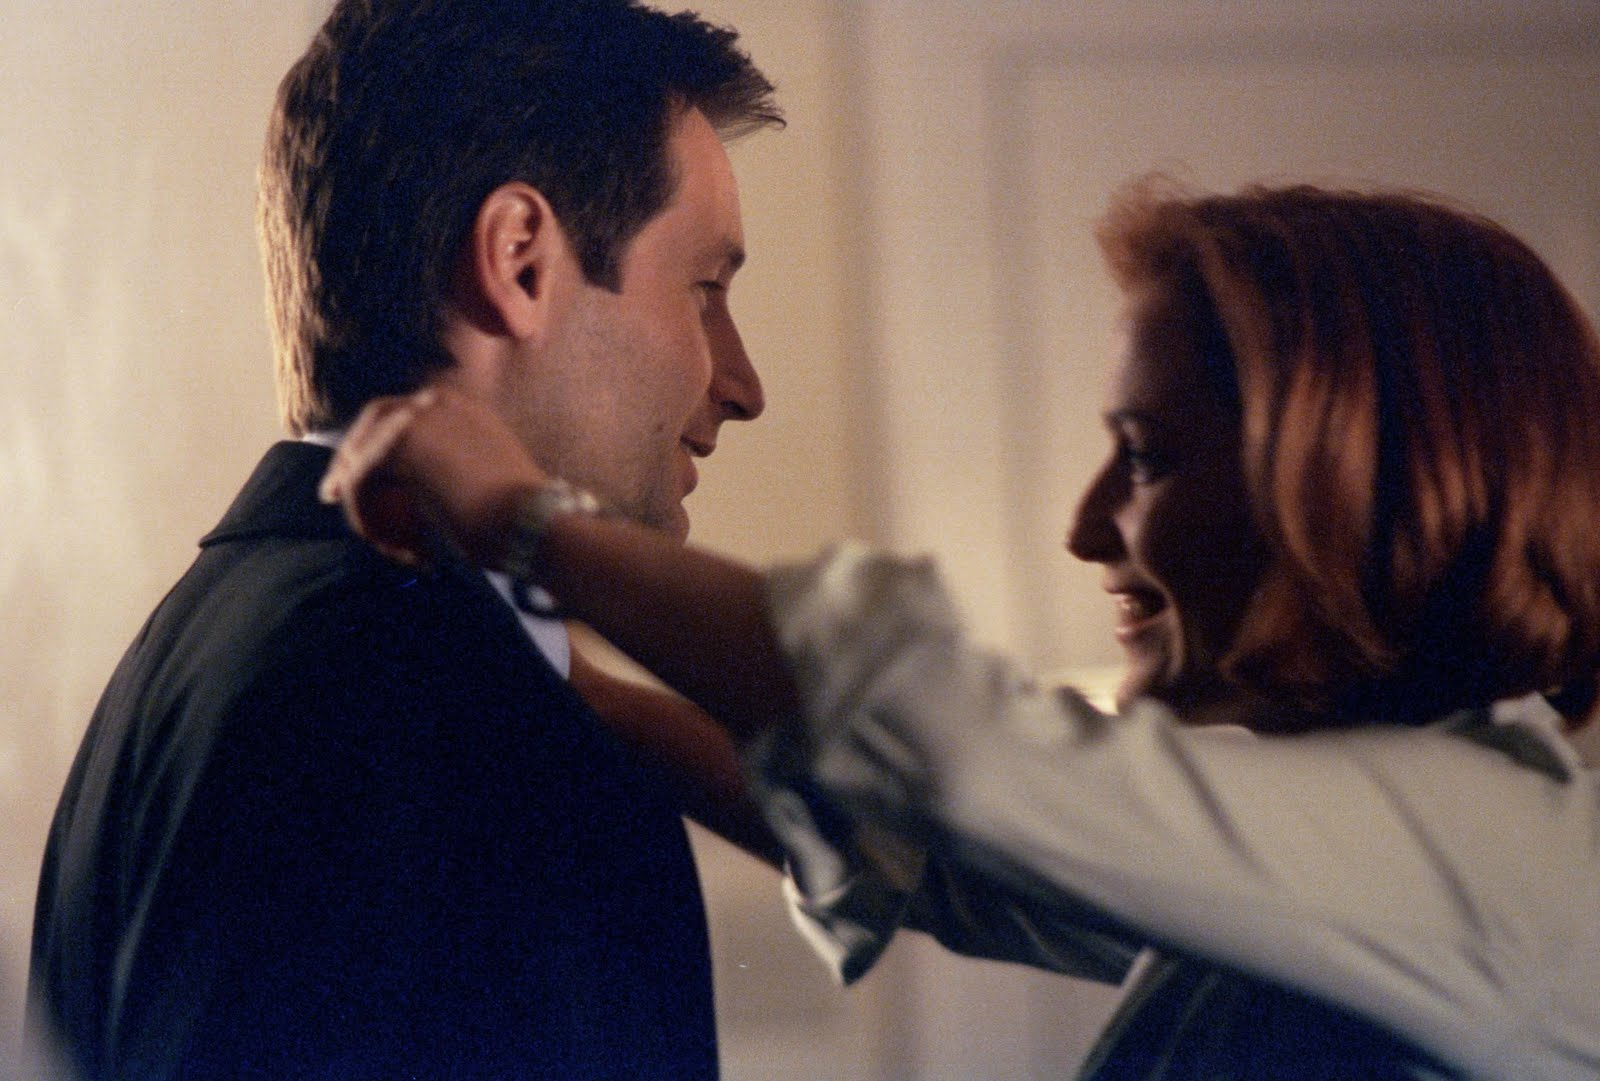 http://3.bp.blogspot.com/-Brf2pCzjOJI/TXB4Eef35cI/AAAAAAAAARg/ypc2McOysp0/s1600/Mulder-and-Scully-mulder-and-scully-8404183-2560-1729.jpg